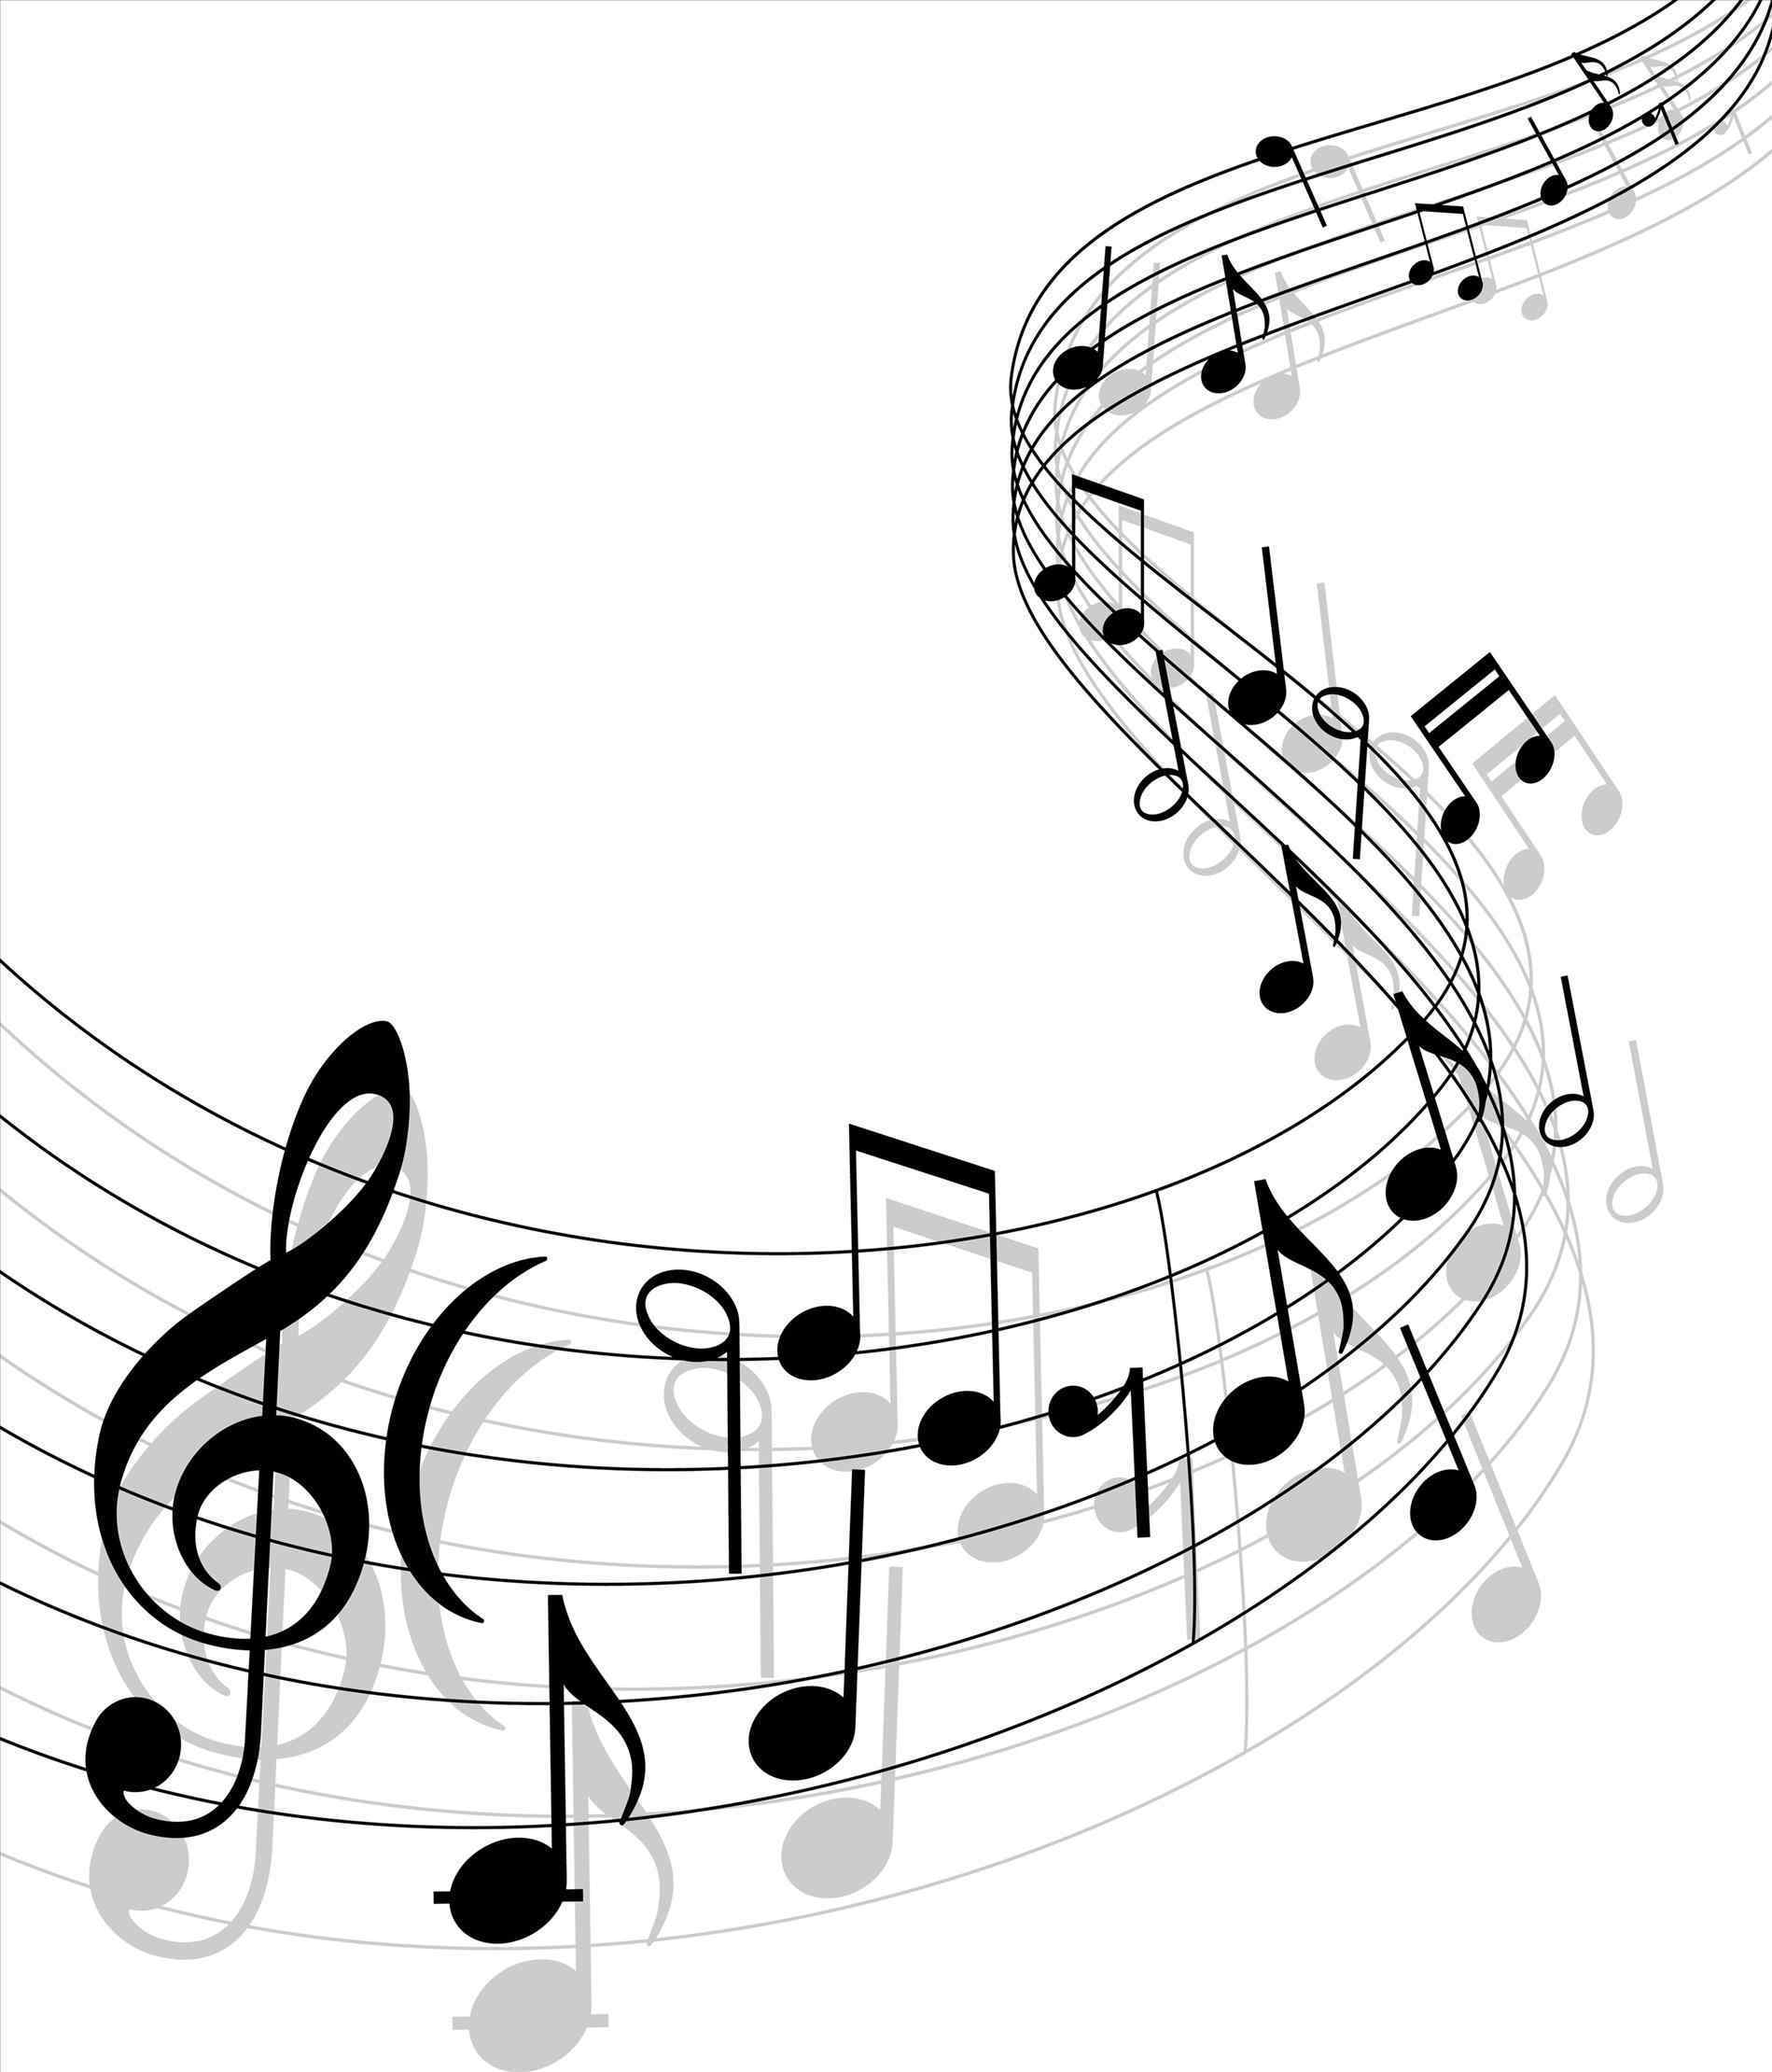 1899x2220 drawings art pictures of free download of cool music notes